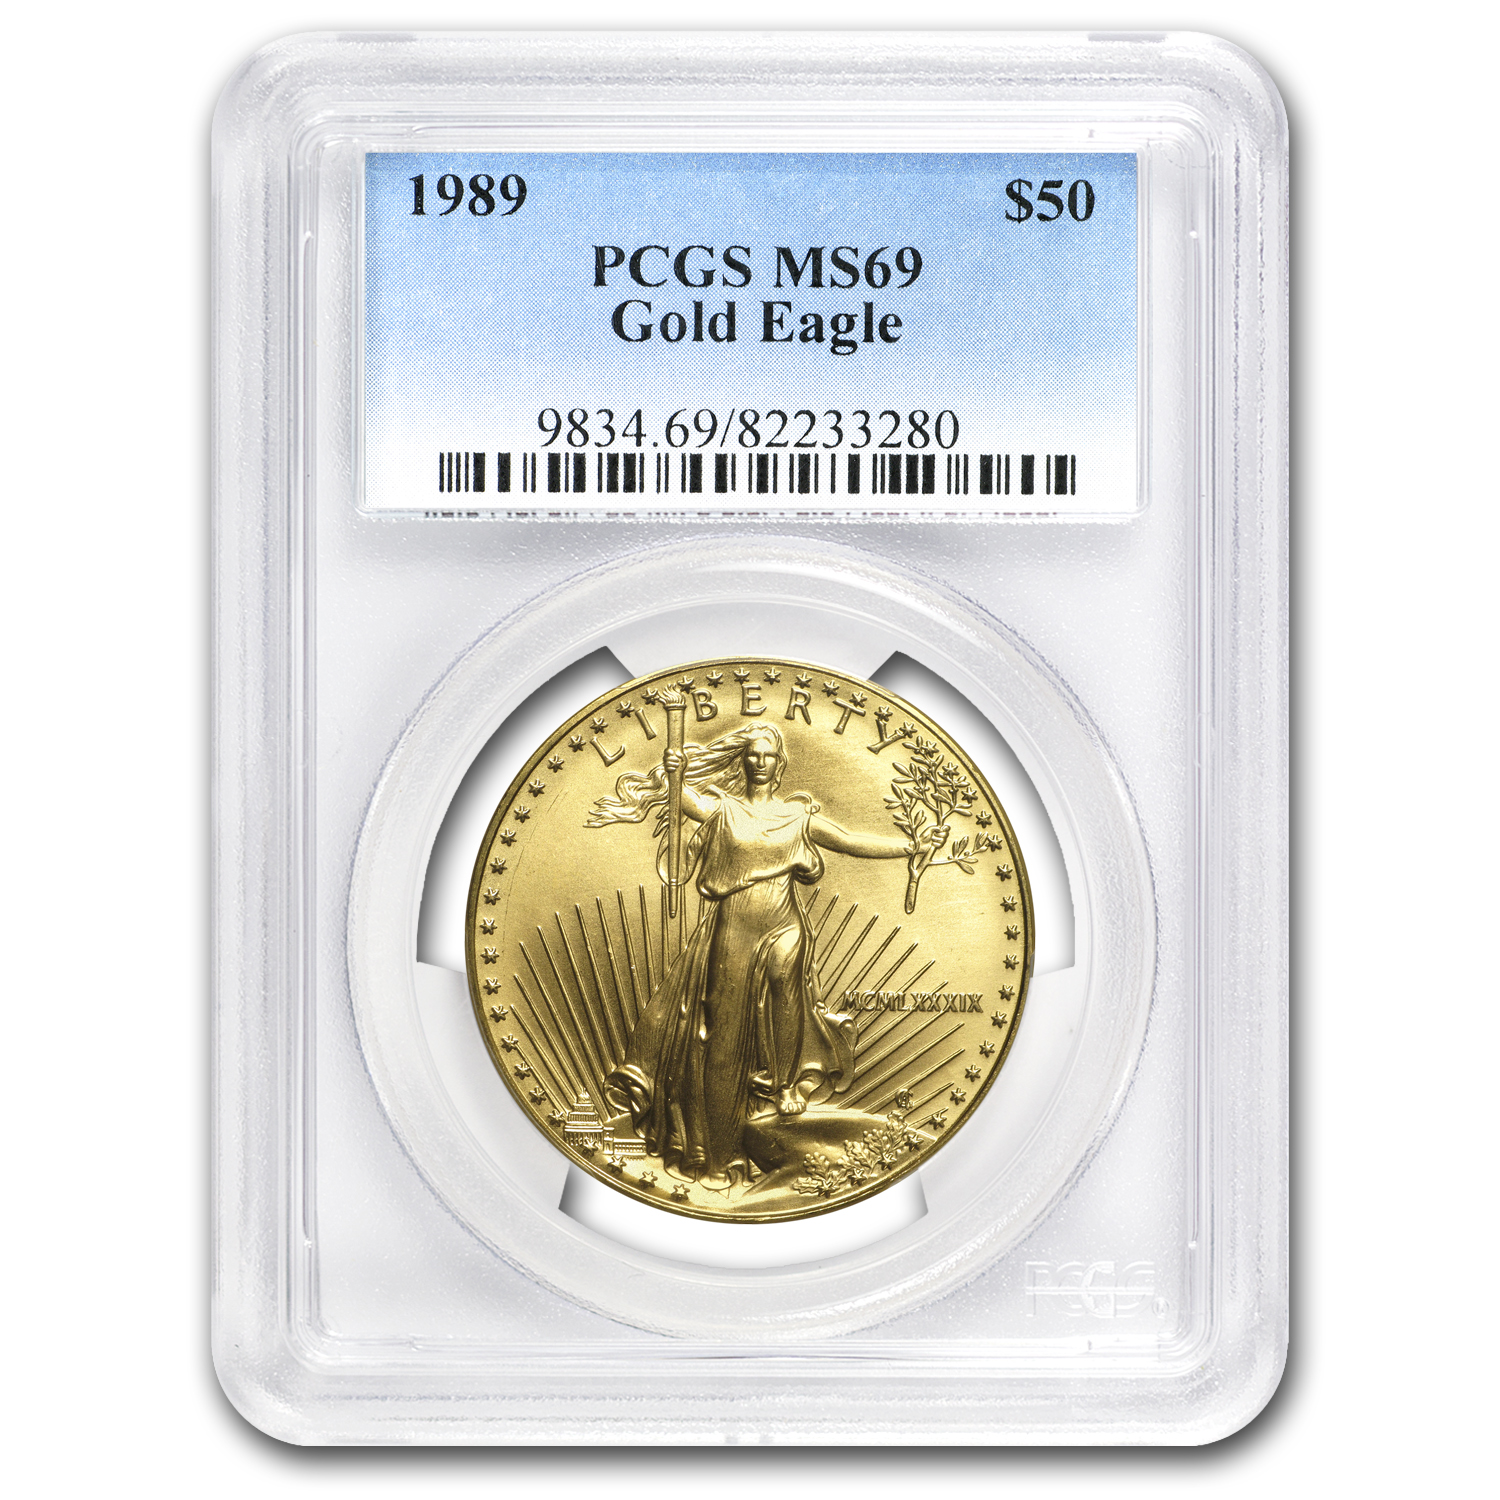 1989 1 oz Gold American Eagle MS-69 PCGS